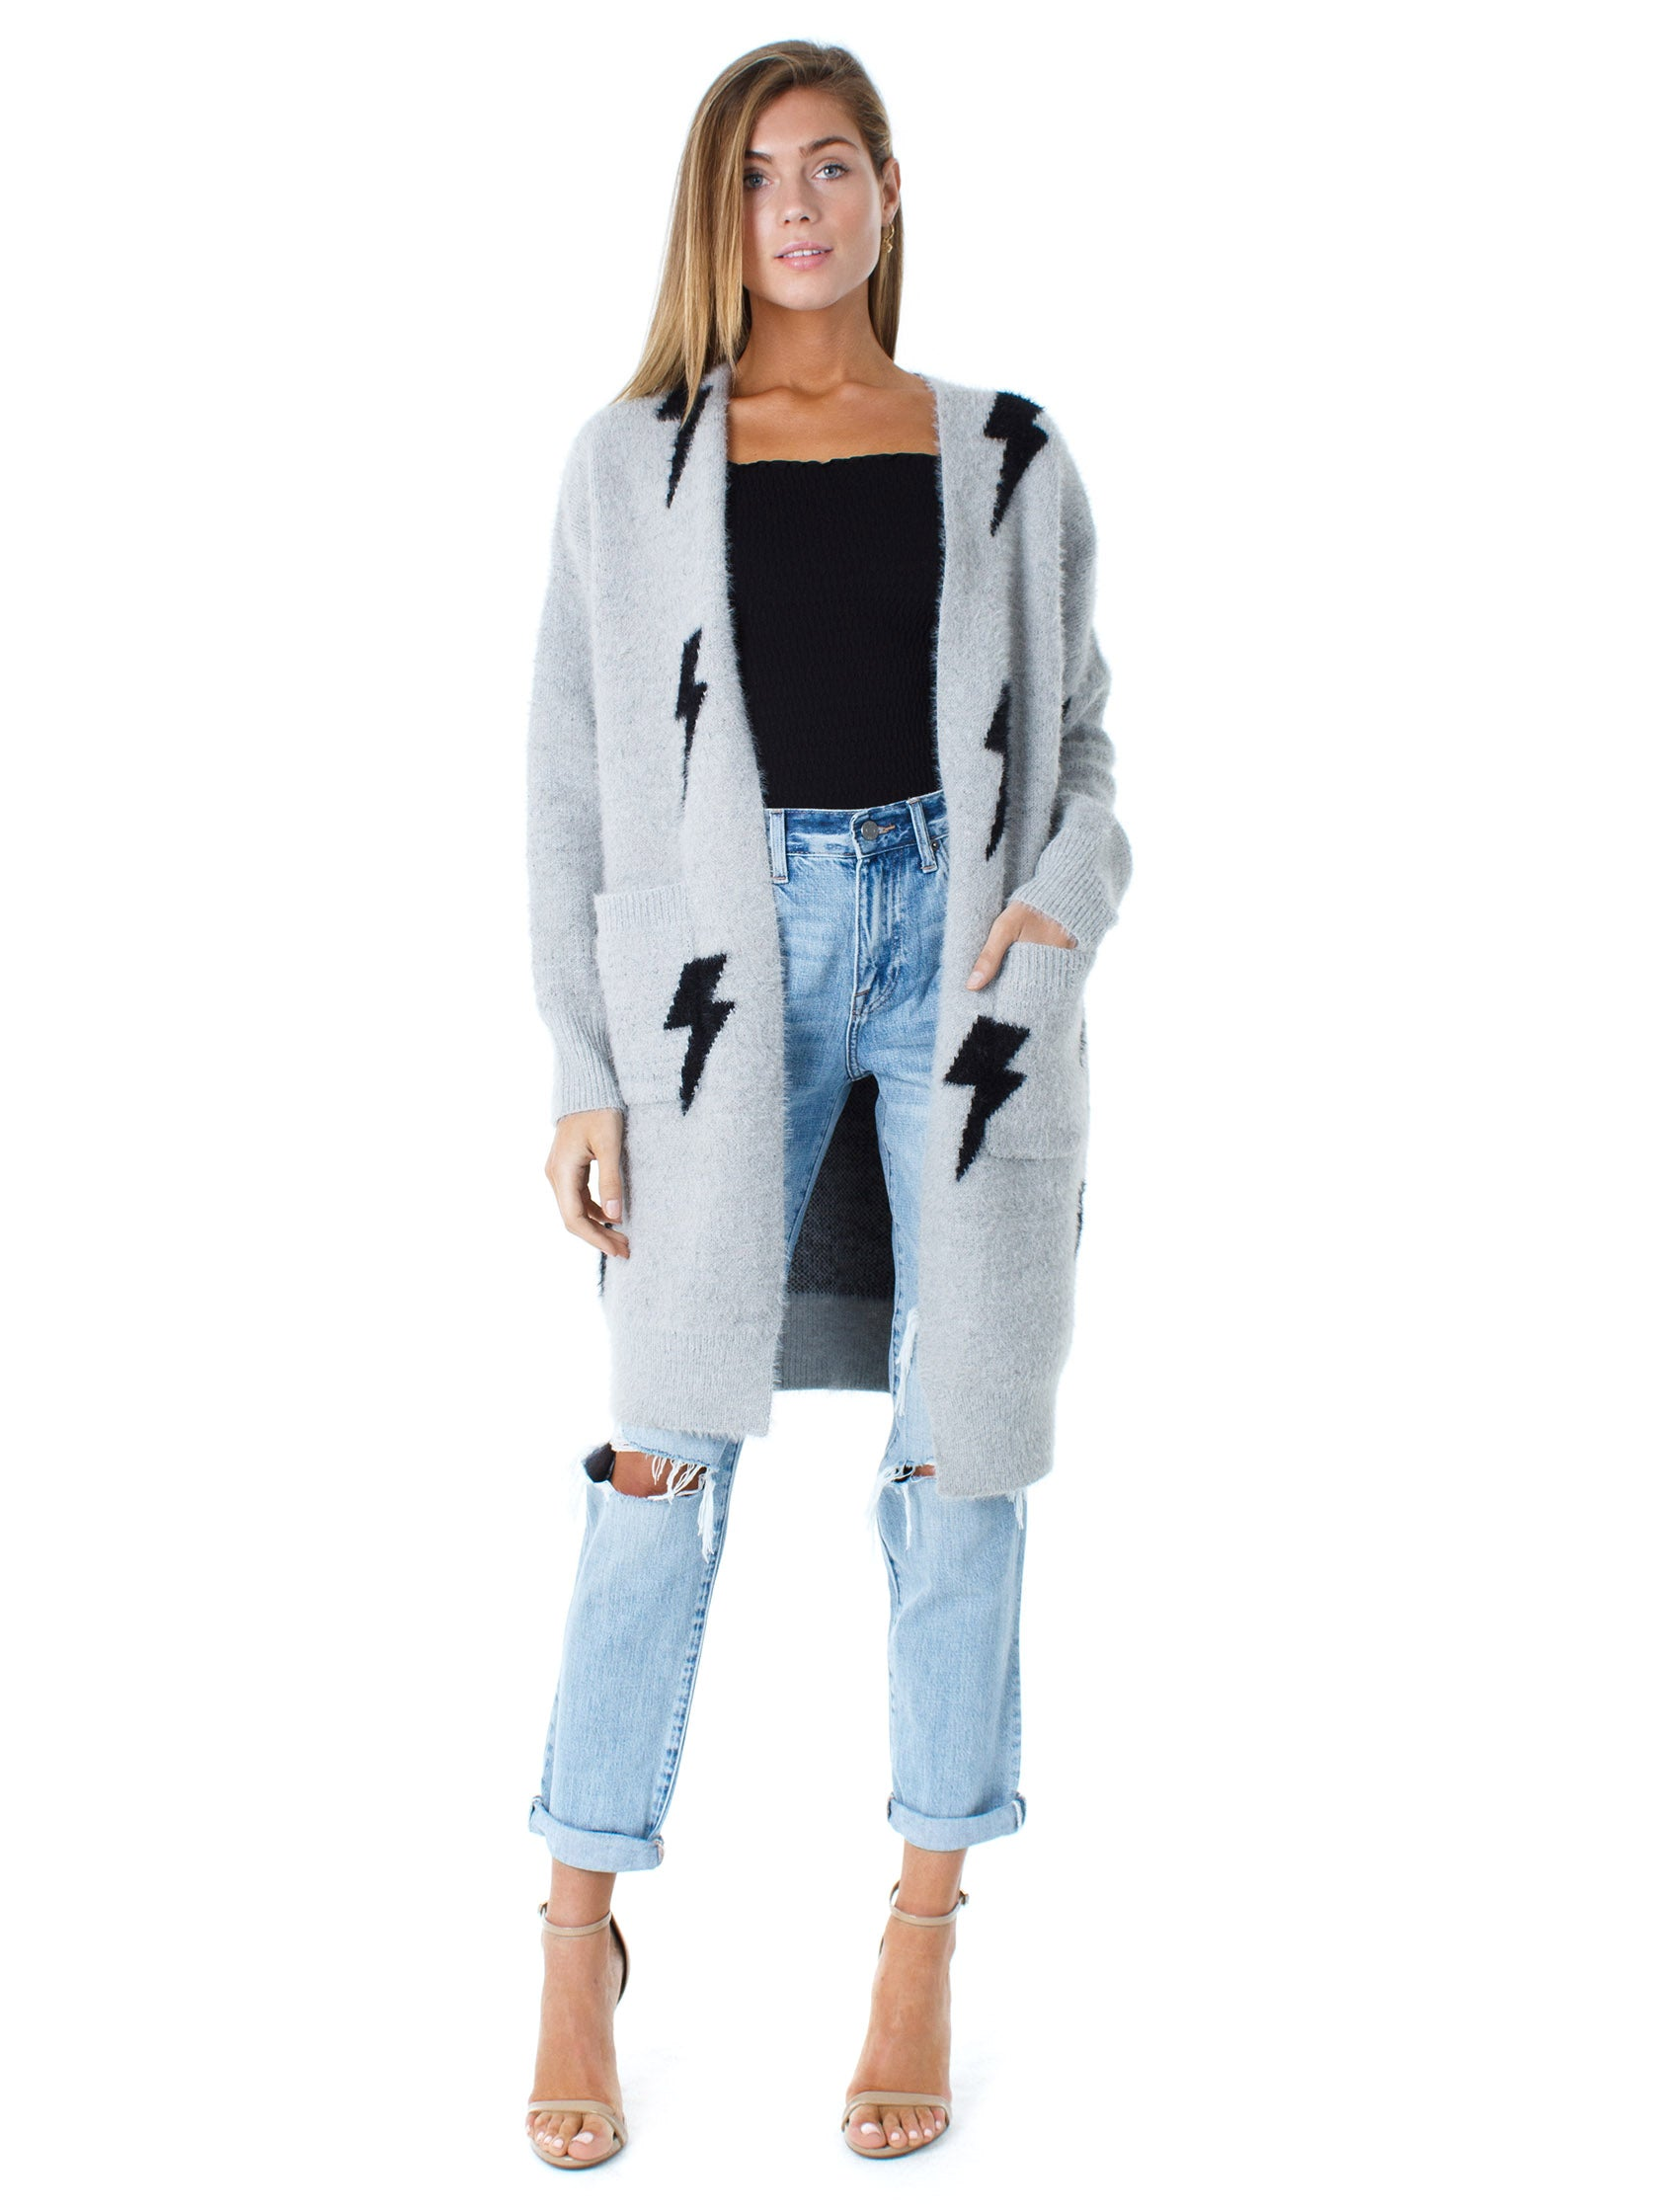 Woman wearing a cardigan rental from FashionPass called The Lightning Cardi